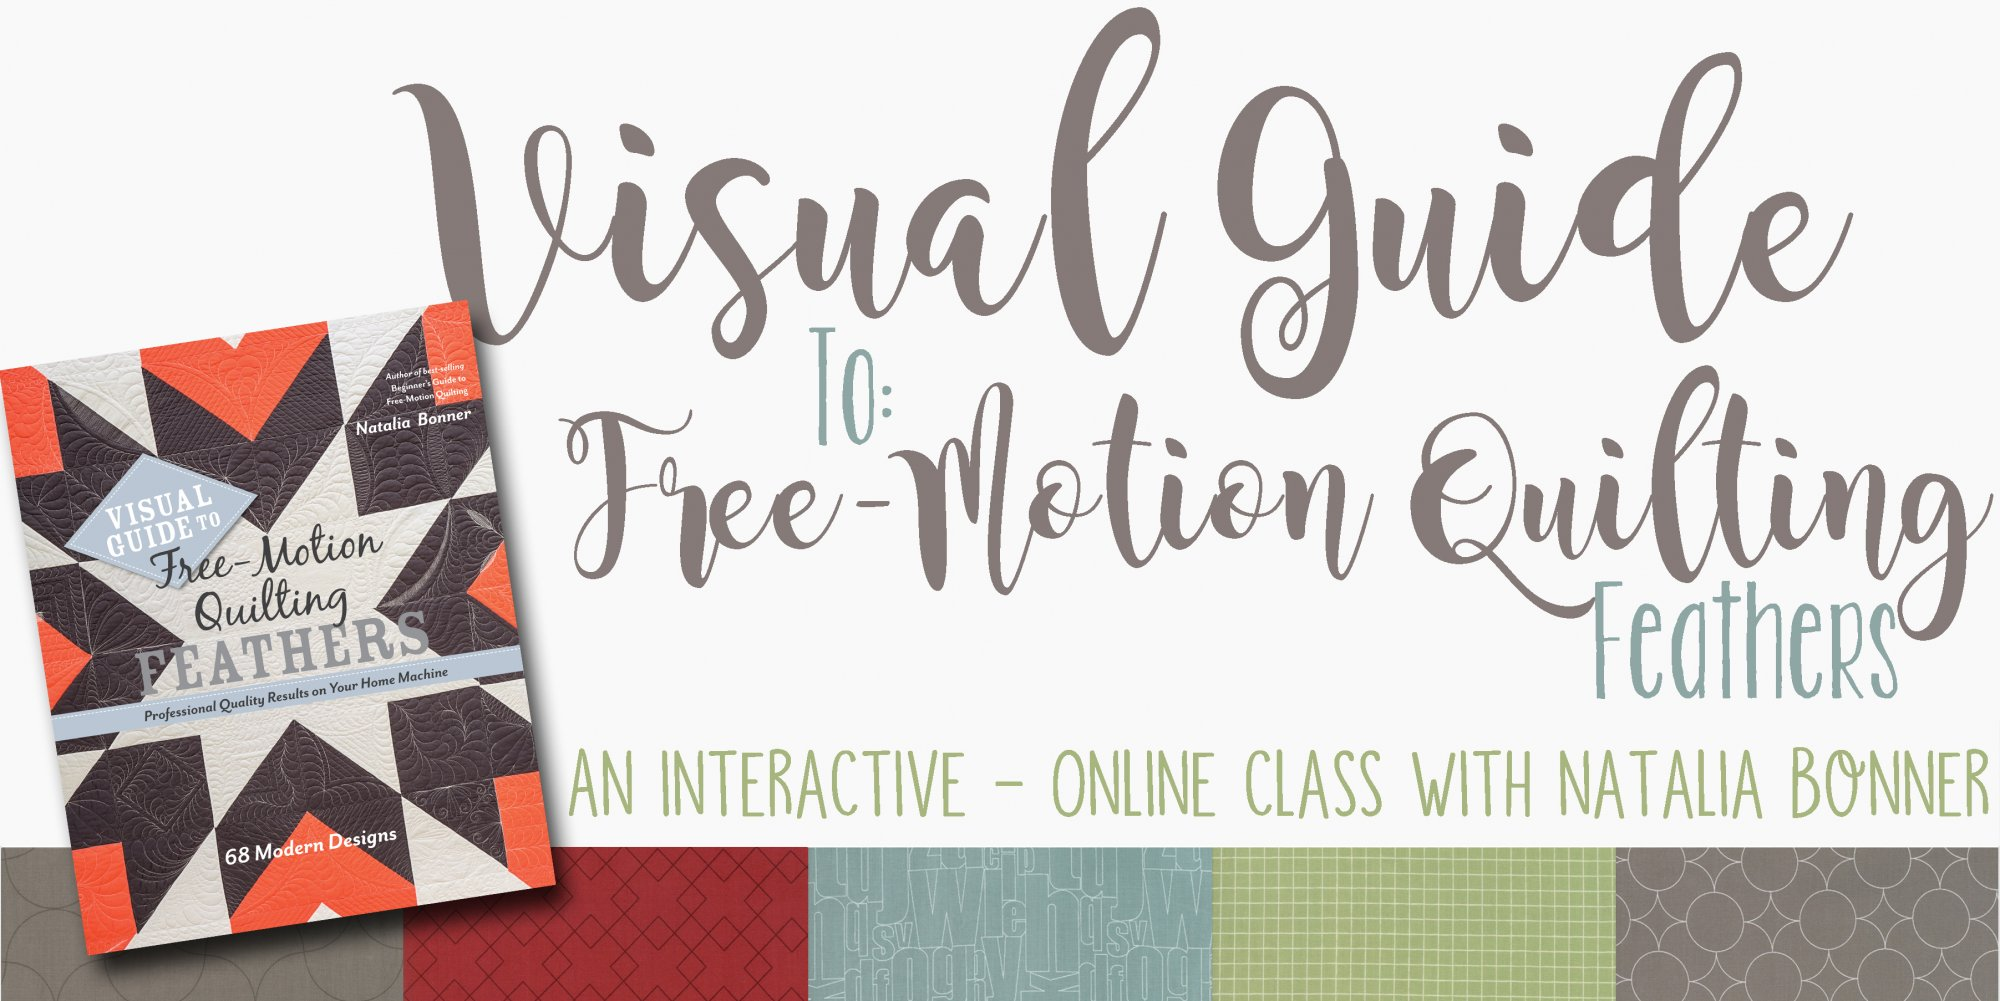 Visual Guide to Free-Motion Quilting Feathers - Interactive Class with Natalia Bonner - Summer 2019